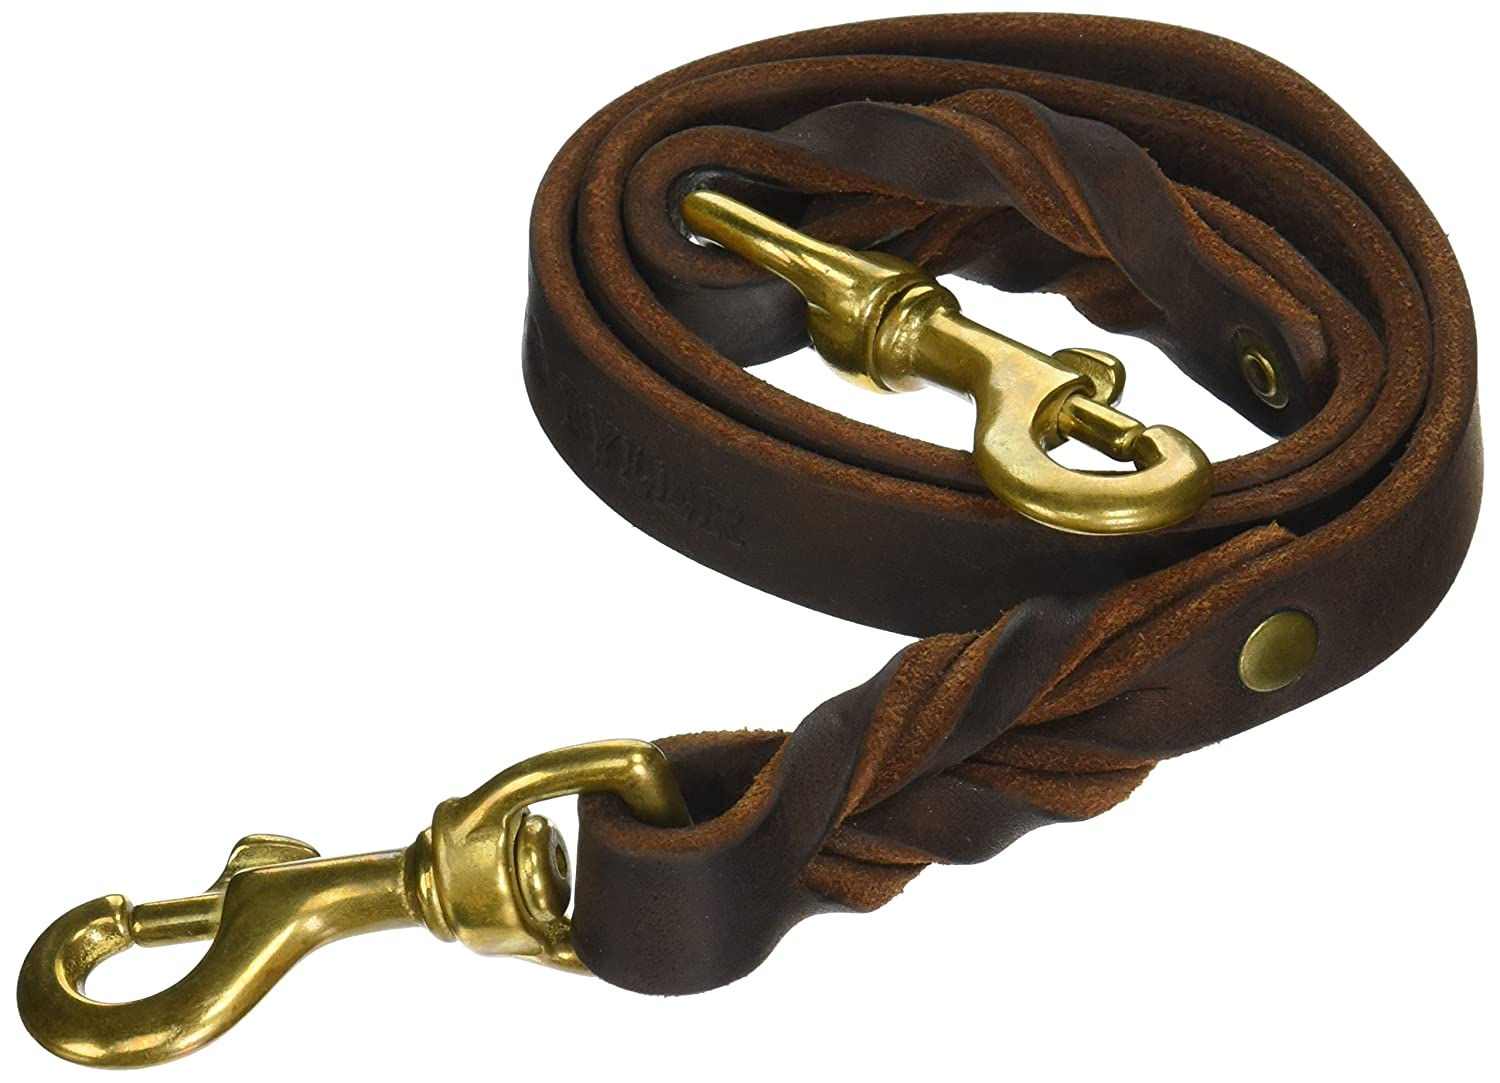 Dean and Tyler Double Snap Braided Dog Leash, Black 3-Feet by 1 2-Inch with Solid Brass Snaps.